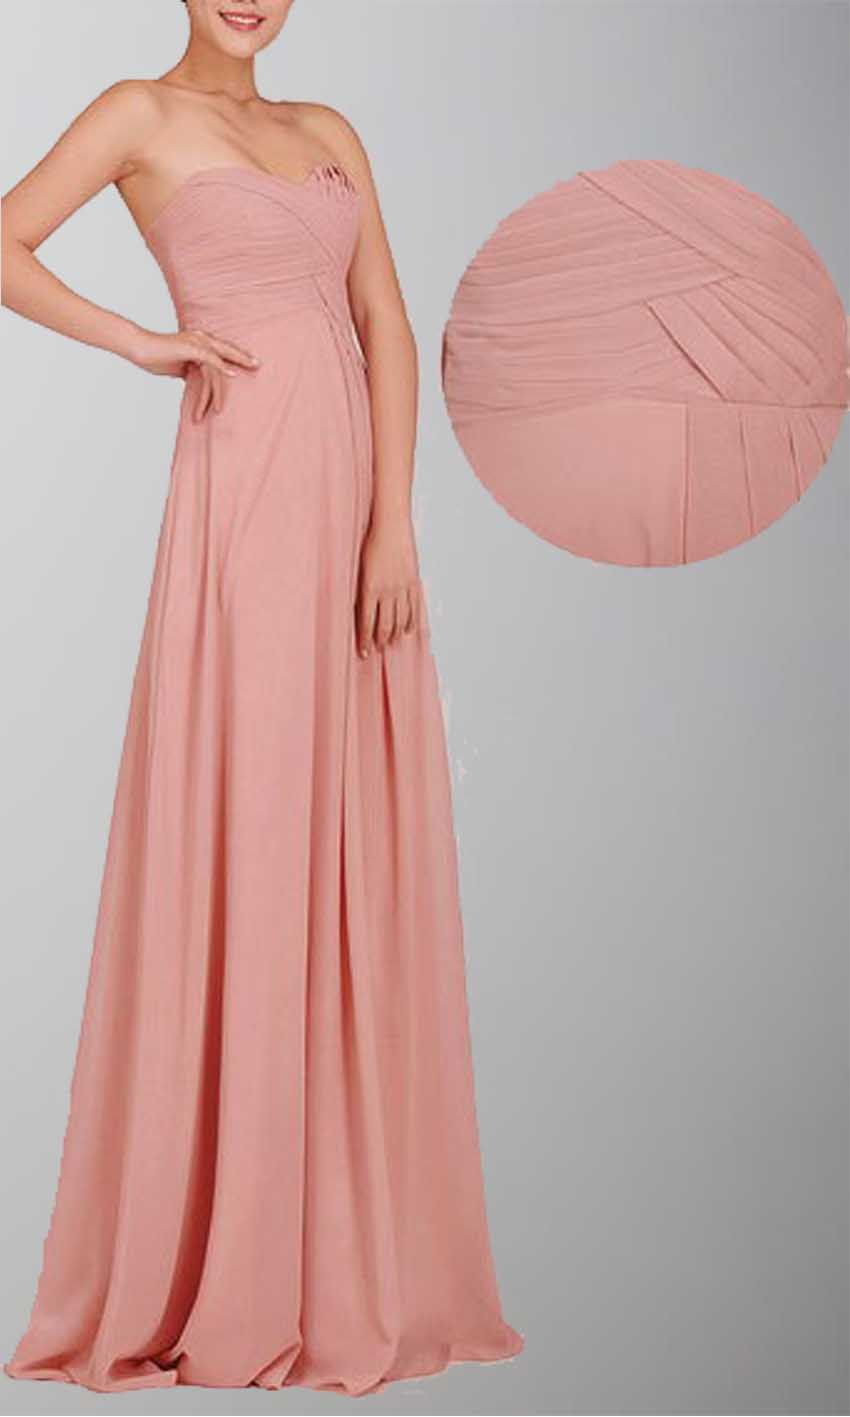 Gorgeous Sweetheart Neck Chiffon Formal Dresses KSP018 [KSP018] - £88.00 : Cheap Prom Dresses Uk, Bridesmaid Dresses, 2014 Prom & Evening Dresses, Look for cheap elegant prom dresses 2014, cocktail gowns, or dresses for special occasions? kissprom.co.uk offers various bridesmaid dresses, evening dress, free shipping to UK etc.